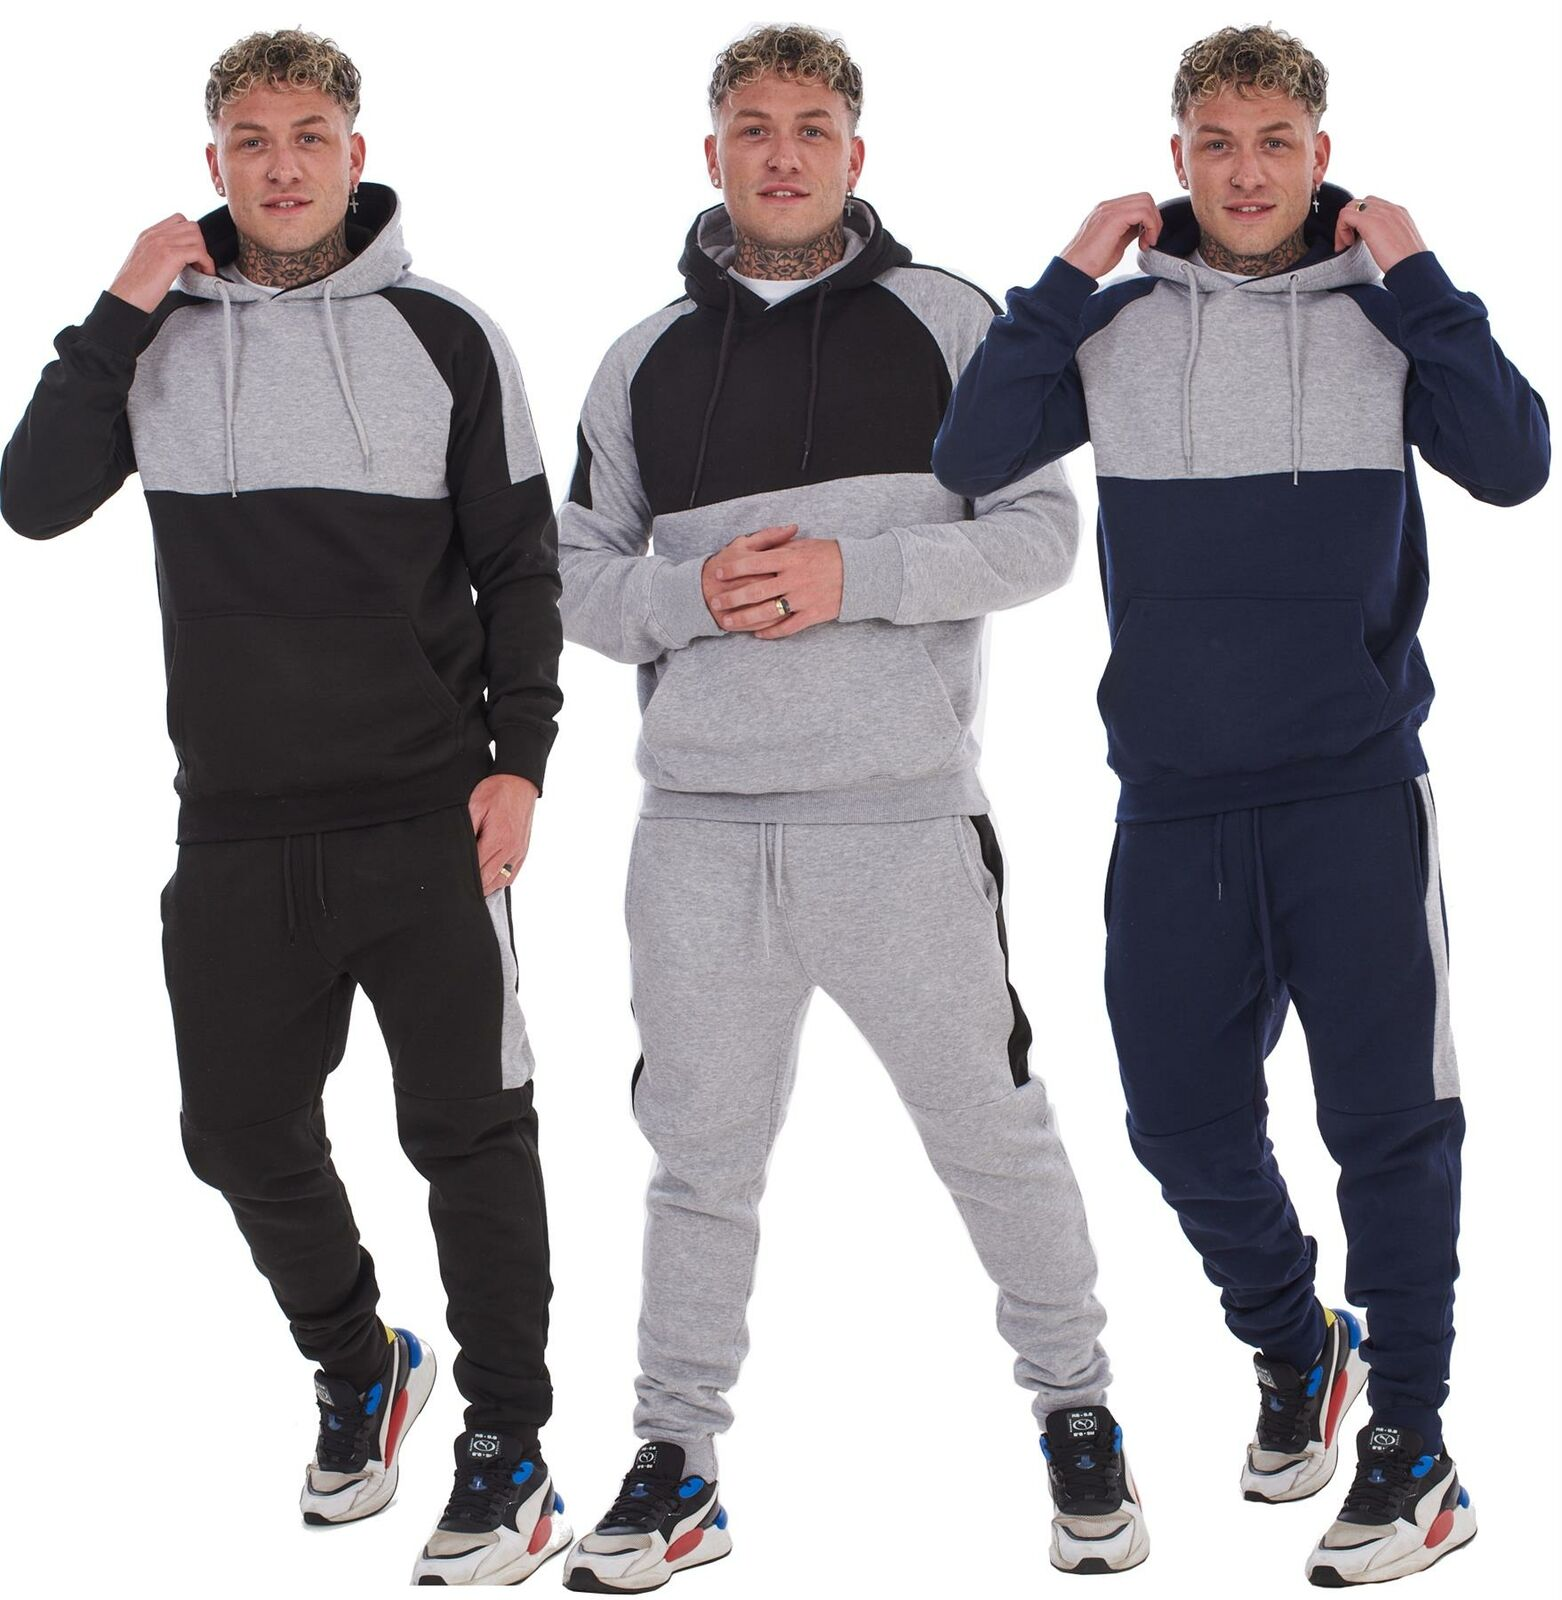 Mens Hooded Tracksuits Pullover Half Arm Striped Sweatshirts Joggers Activewear